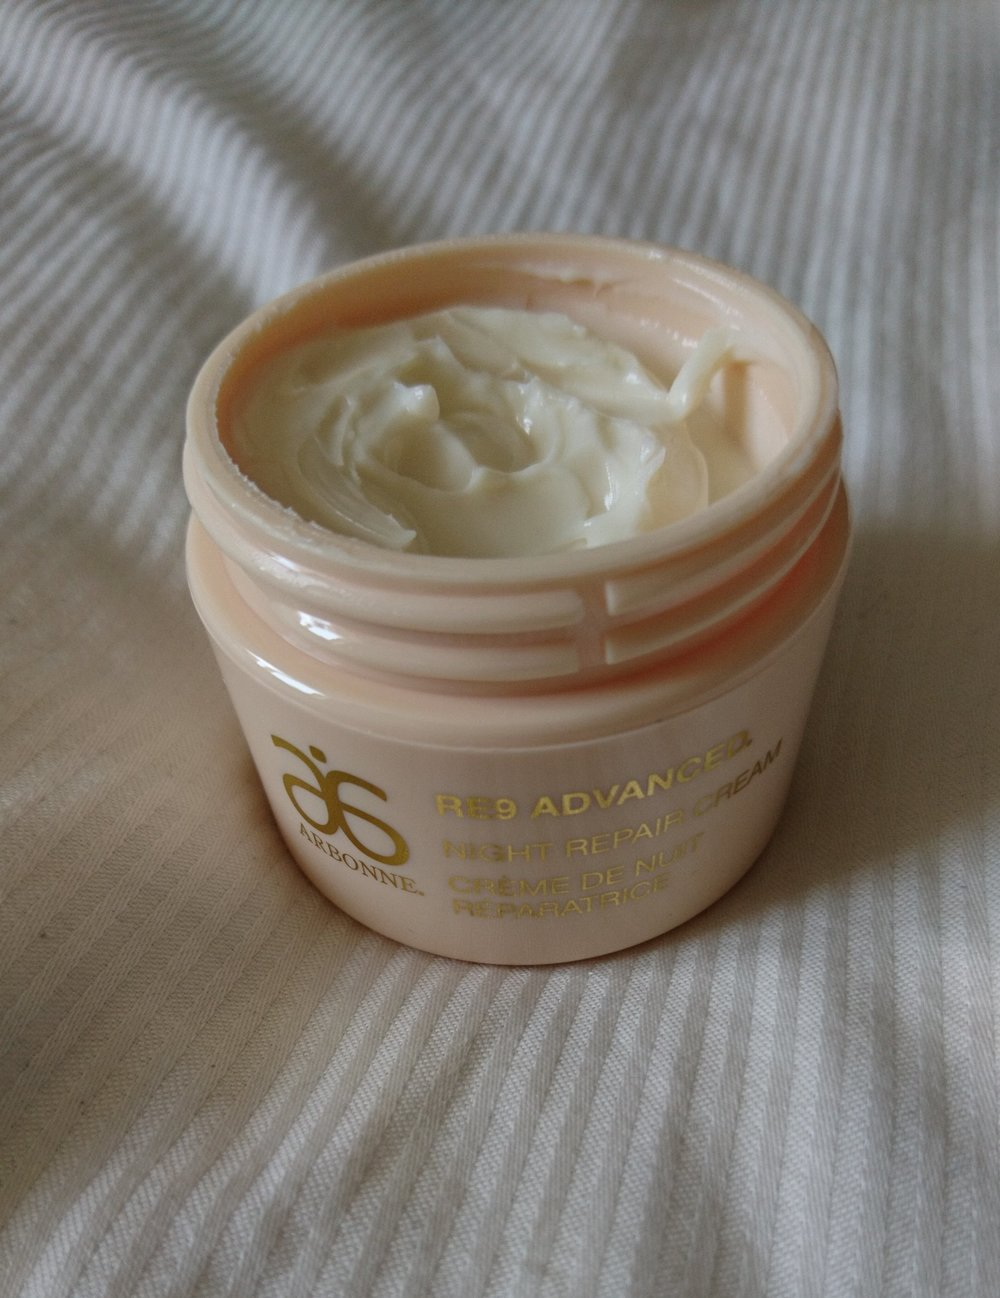 RE9 Night Repair Cream